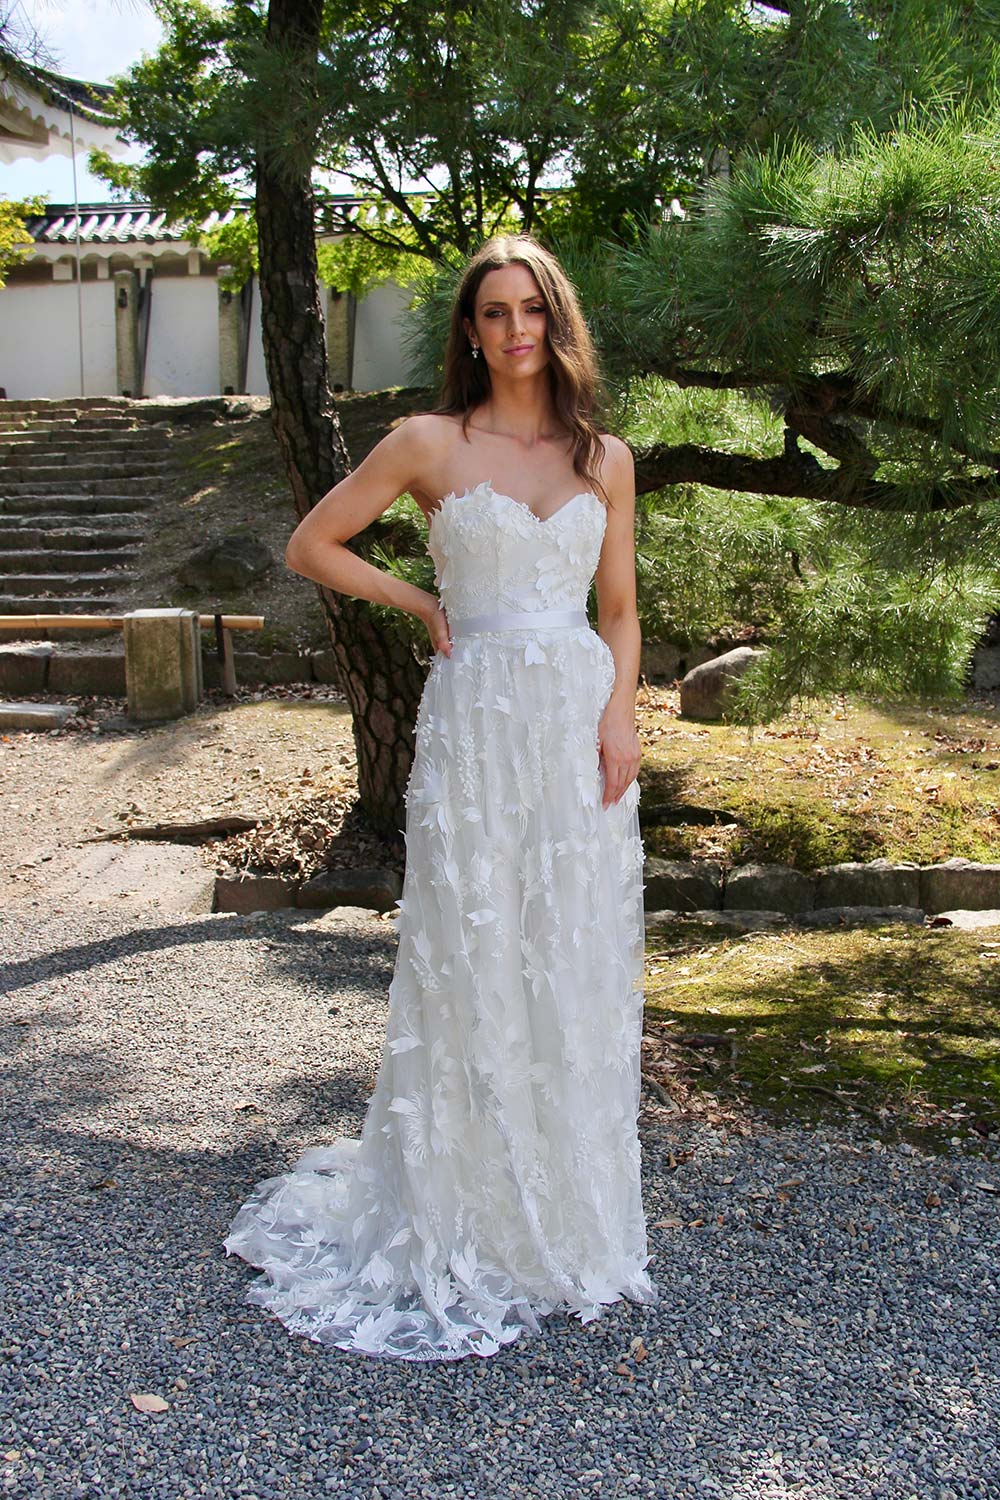 Female model wearing Vinka Design An Oriental Affair Wedding Dress. In sunlit garden the front detail of a boned fitted strapless bodice and leaf lace on a tulle base